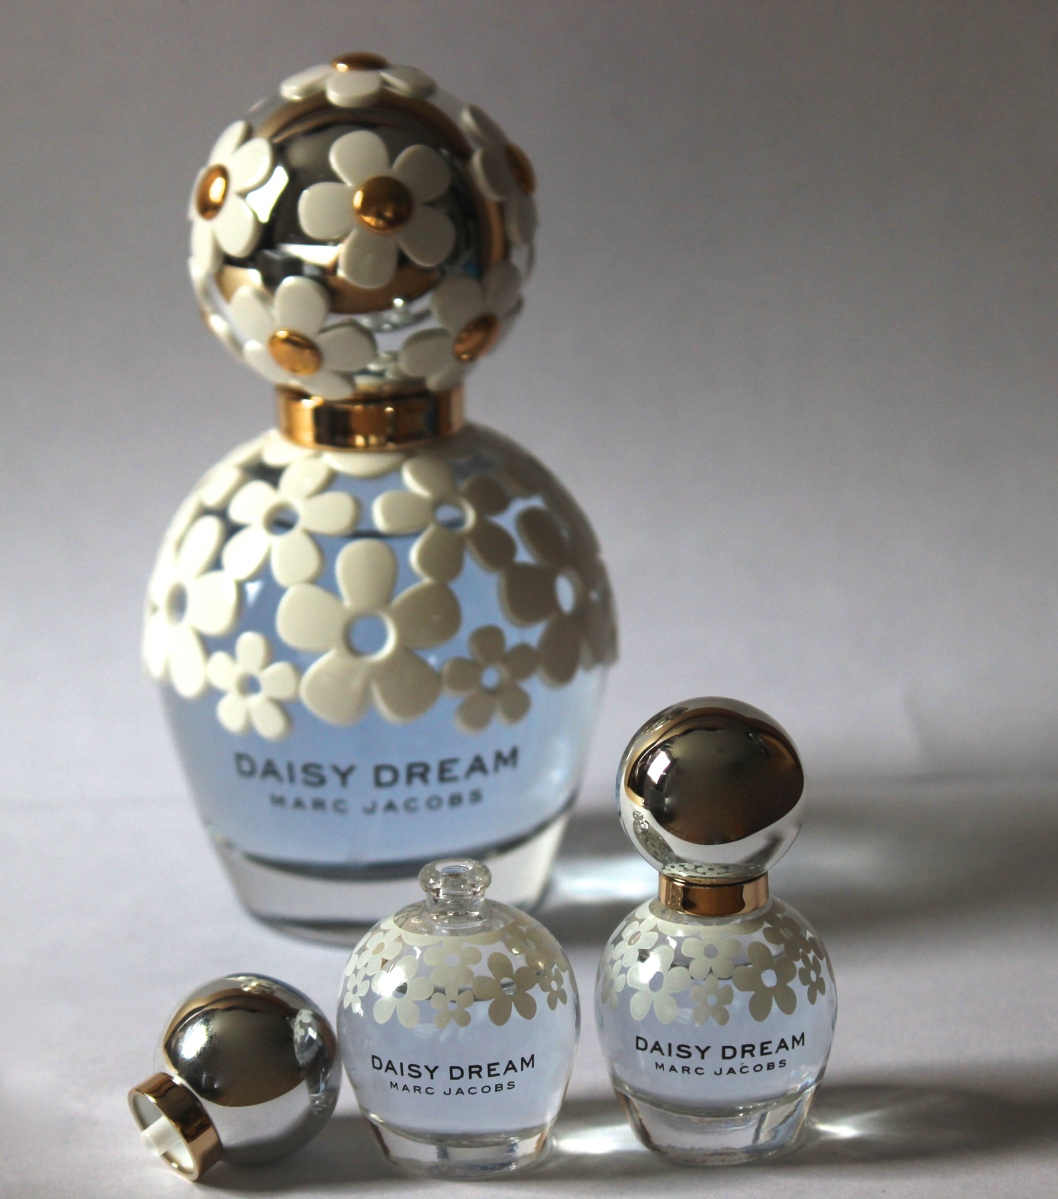 Marc Jacobs Daisy Dream | Review